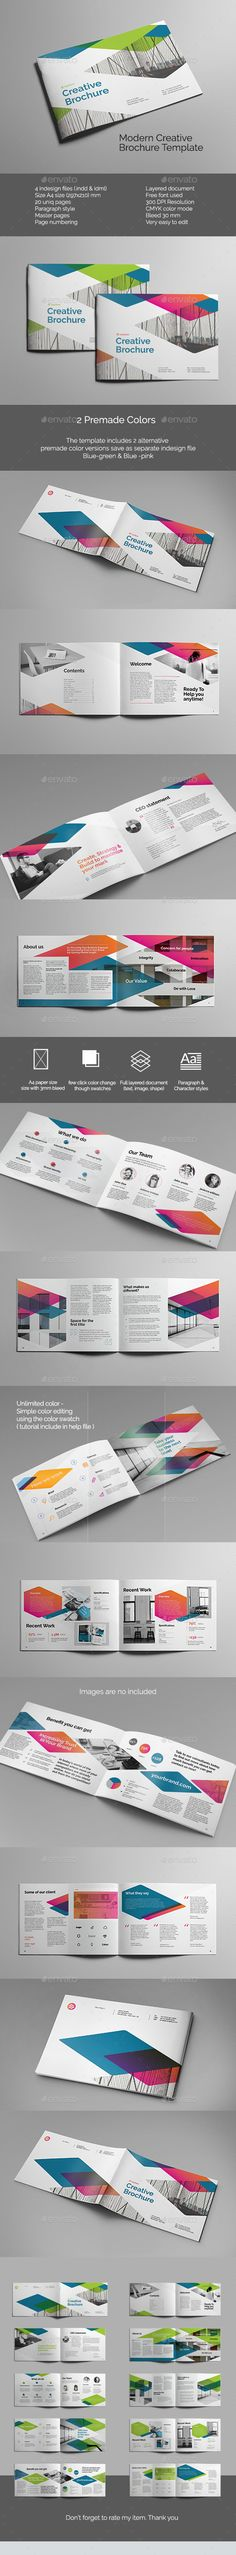 Buy Modern Creative Brochure by samurichan on GraphicRiver. Modern Creative Brochure template, Can use for any personal or corporate, This layout is suitable for any project pur. Creative Brochure, Brochure Design, Brochure Template, Stationery Design, Creative Business, Branding Design, Print Layout, Layout Design, Print Design